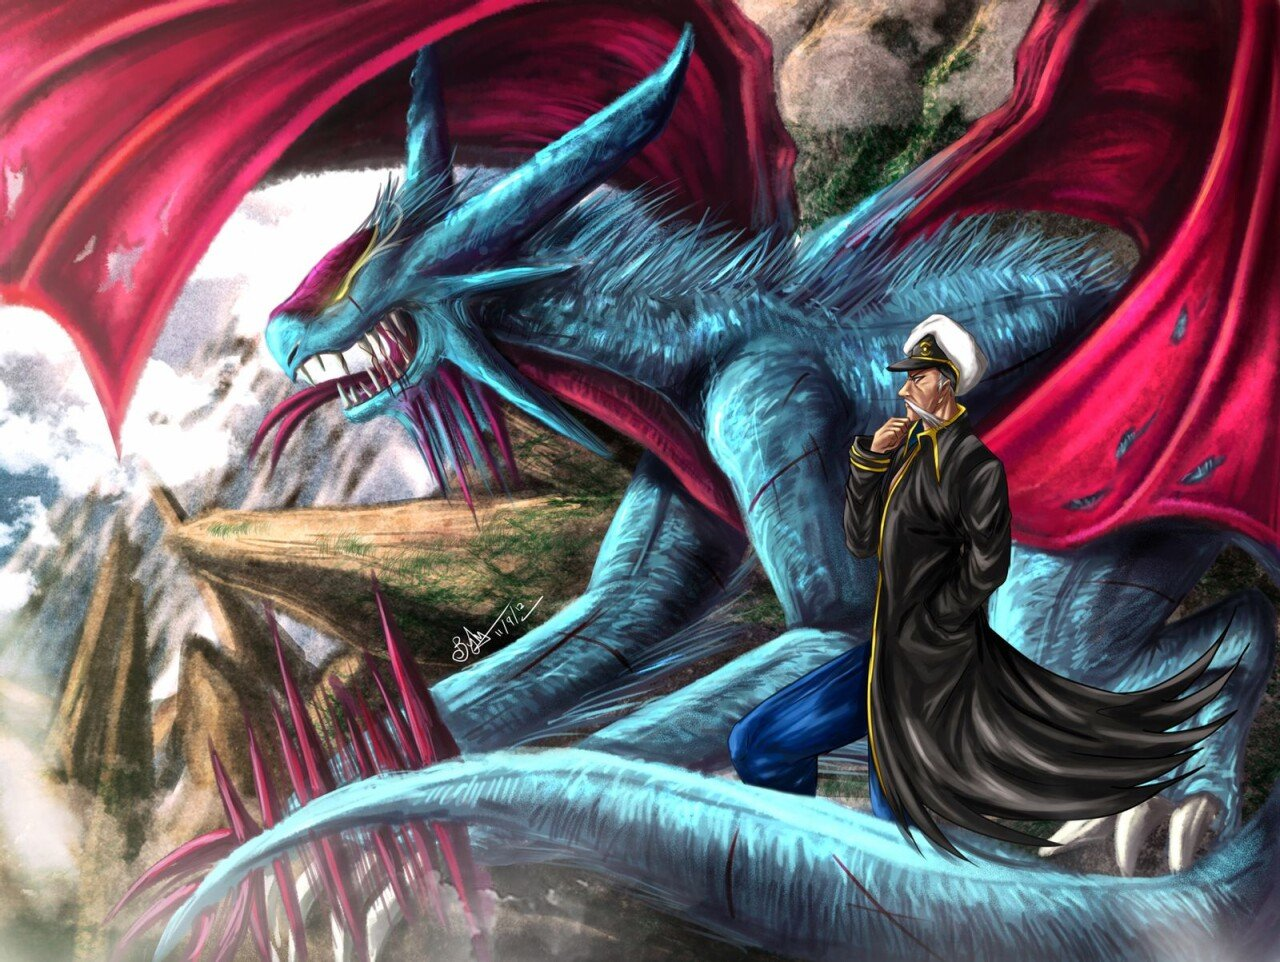 drake_and_salamence_by_beverii_d5eg60d-fullview.jpg 포켓몬스터 시리즈별 사천왕들을.ARABOZA